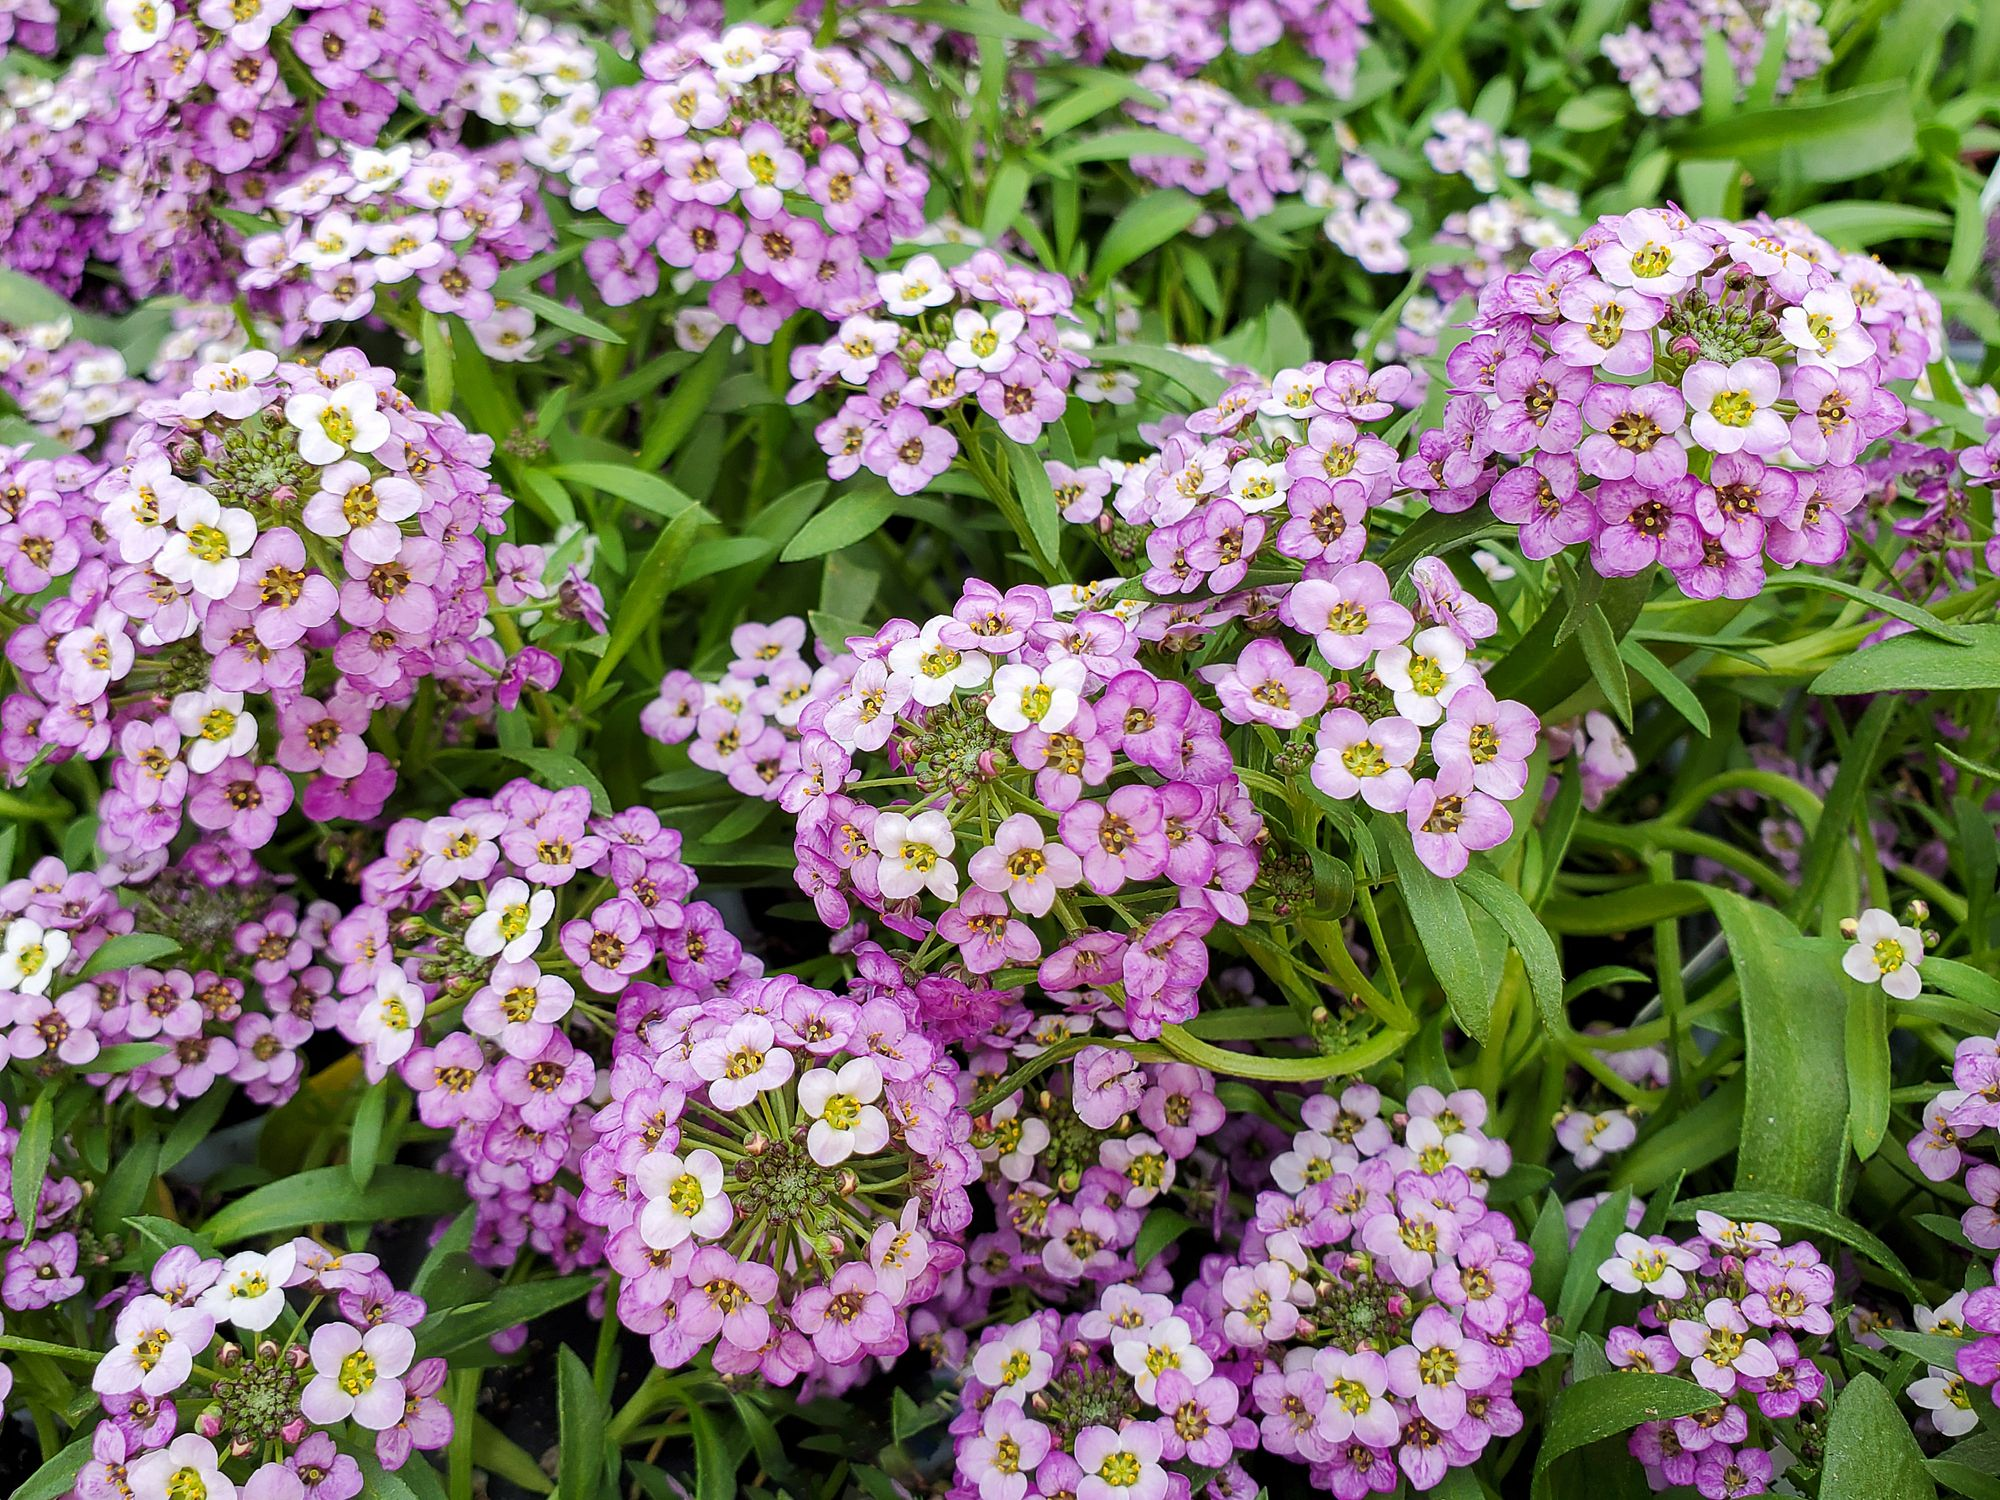 20 Best Ground Cover Plants And Flowers Low Maintenance Ground Covers To Prevent Weeds